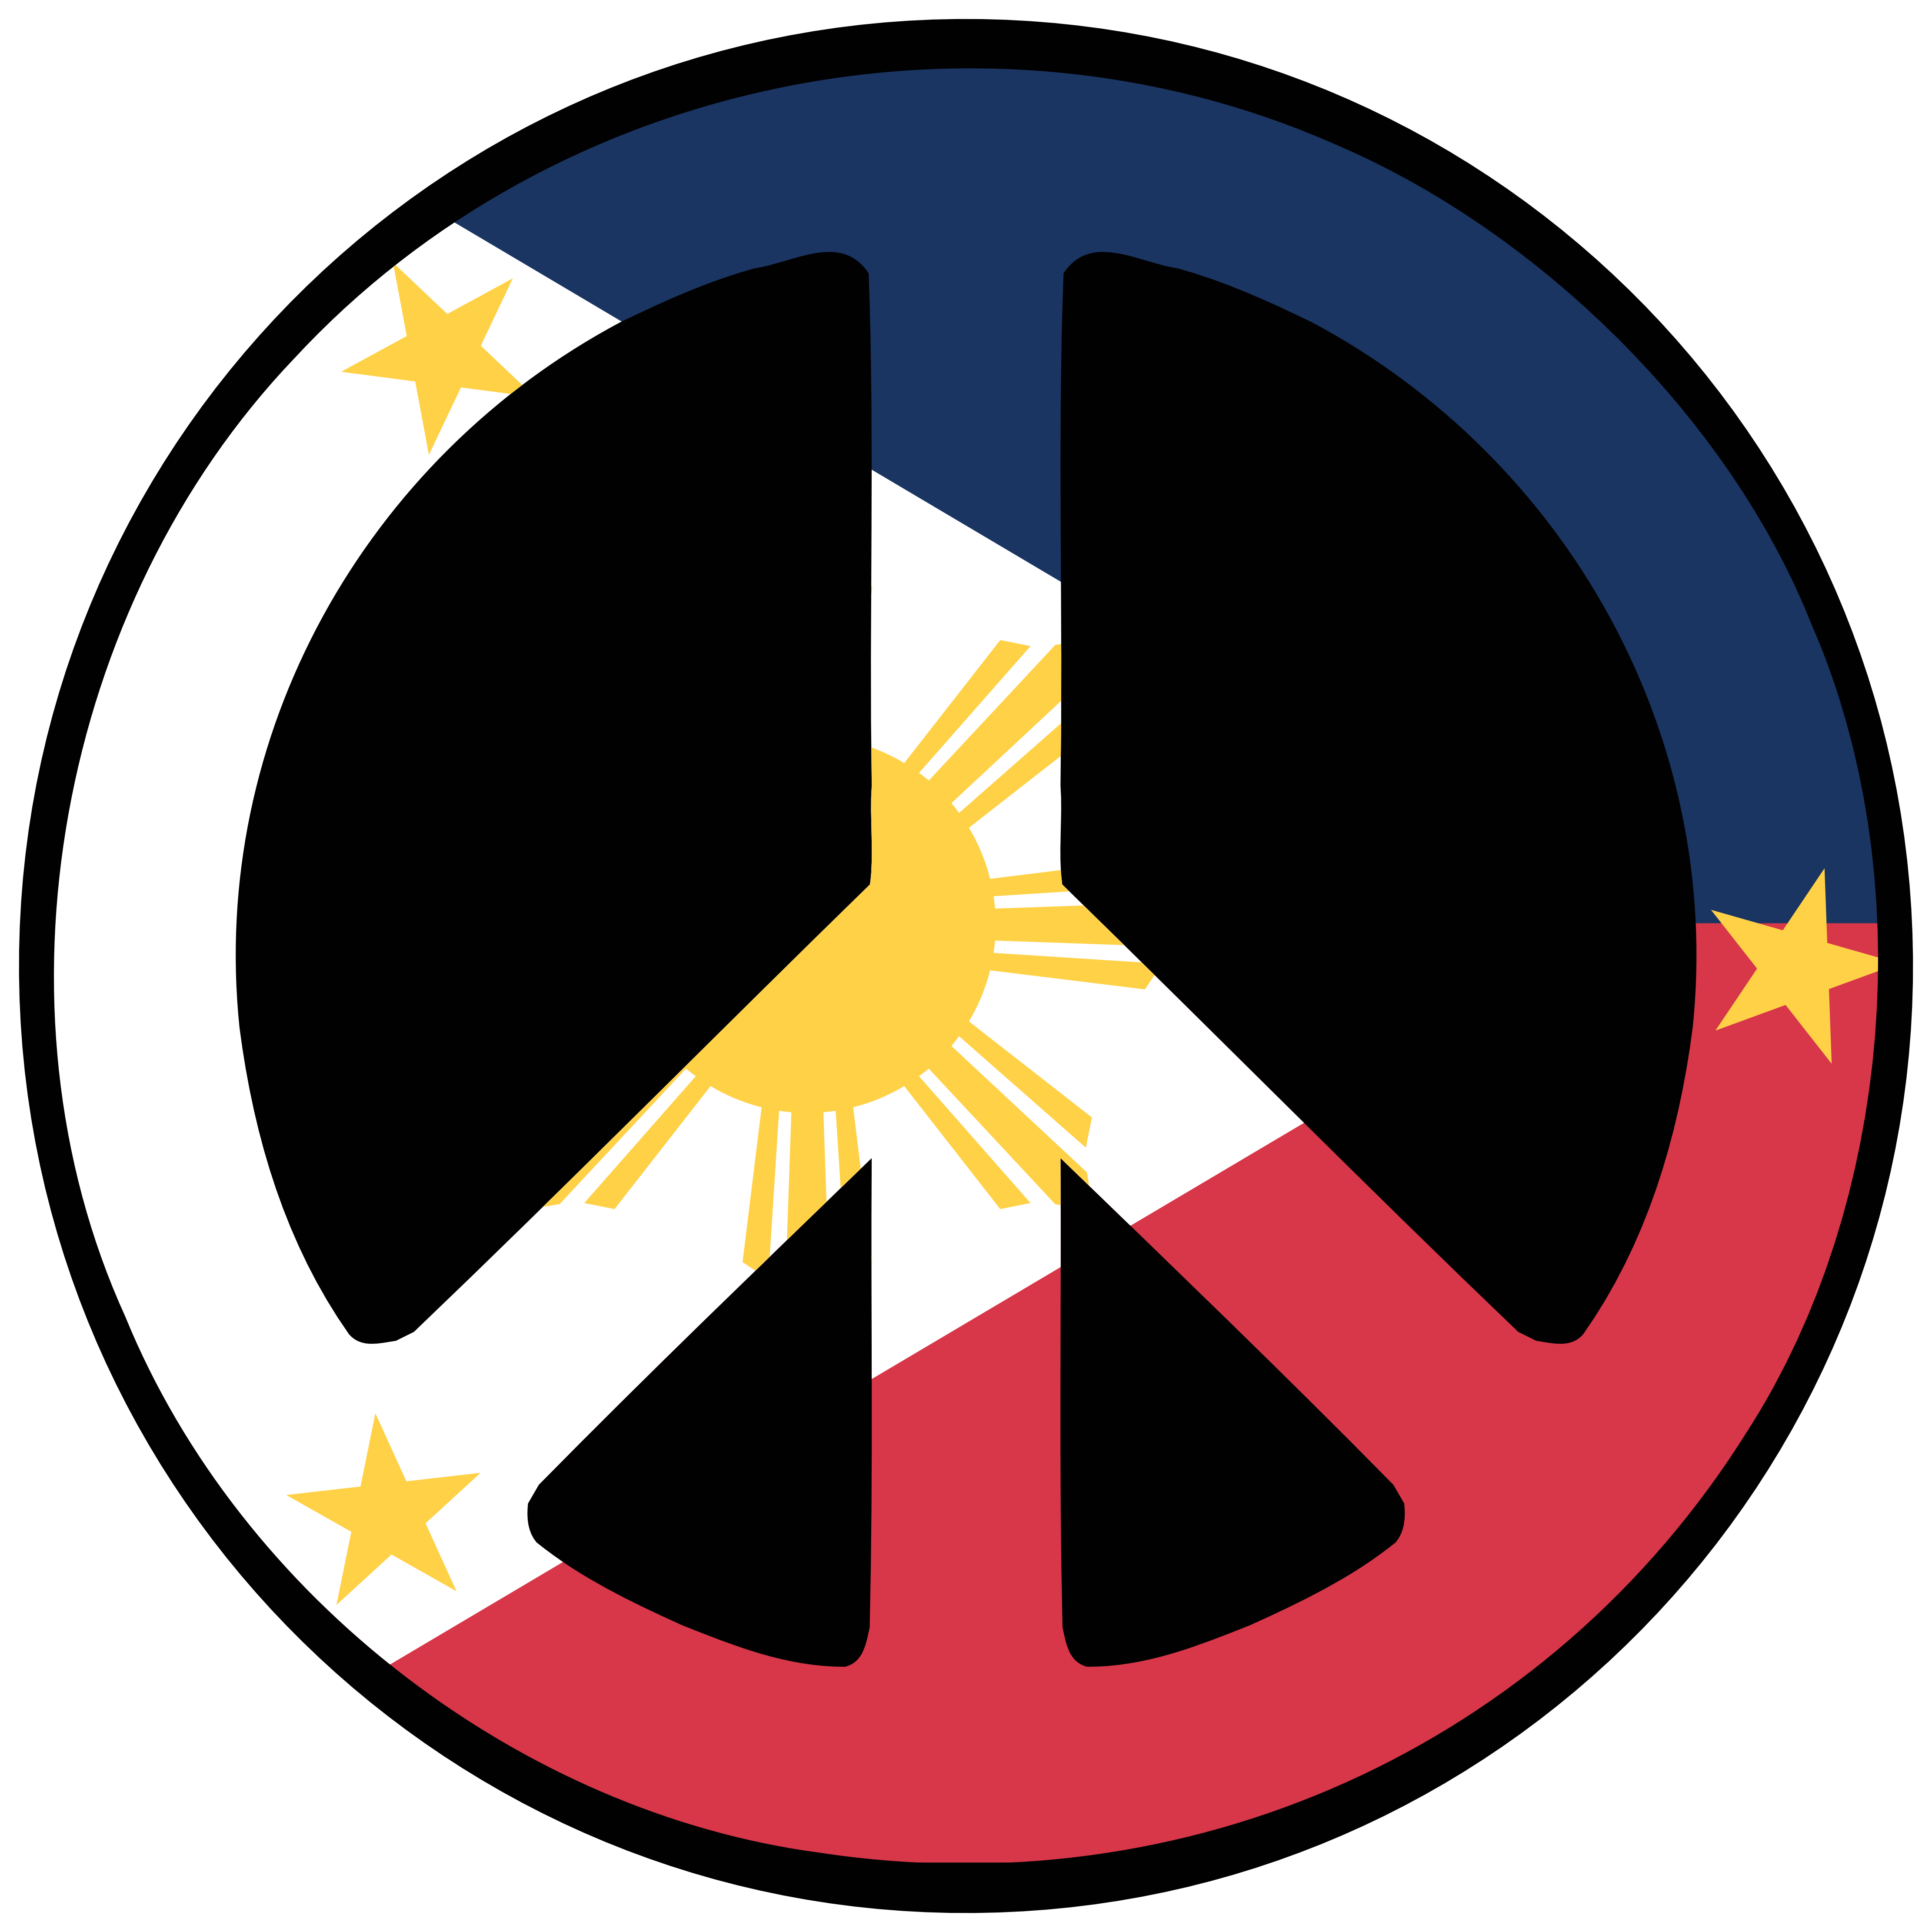 Philippines two finger peace sign doves peace pinterest philippines biocorpaavc